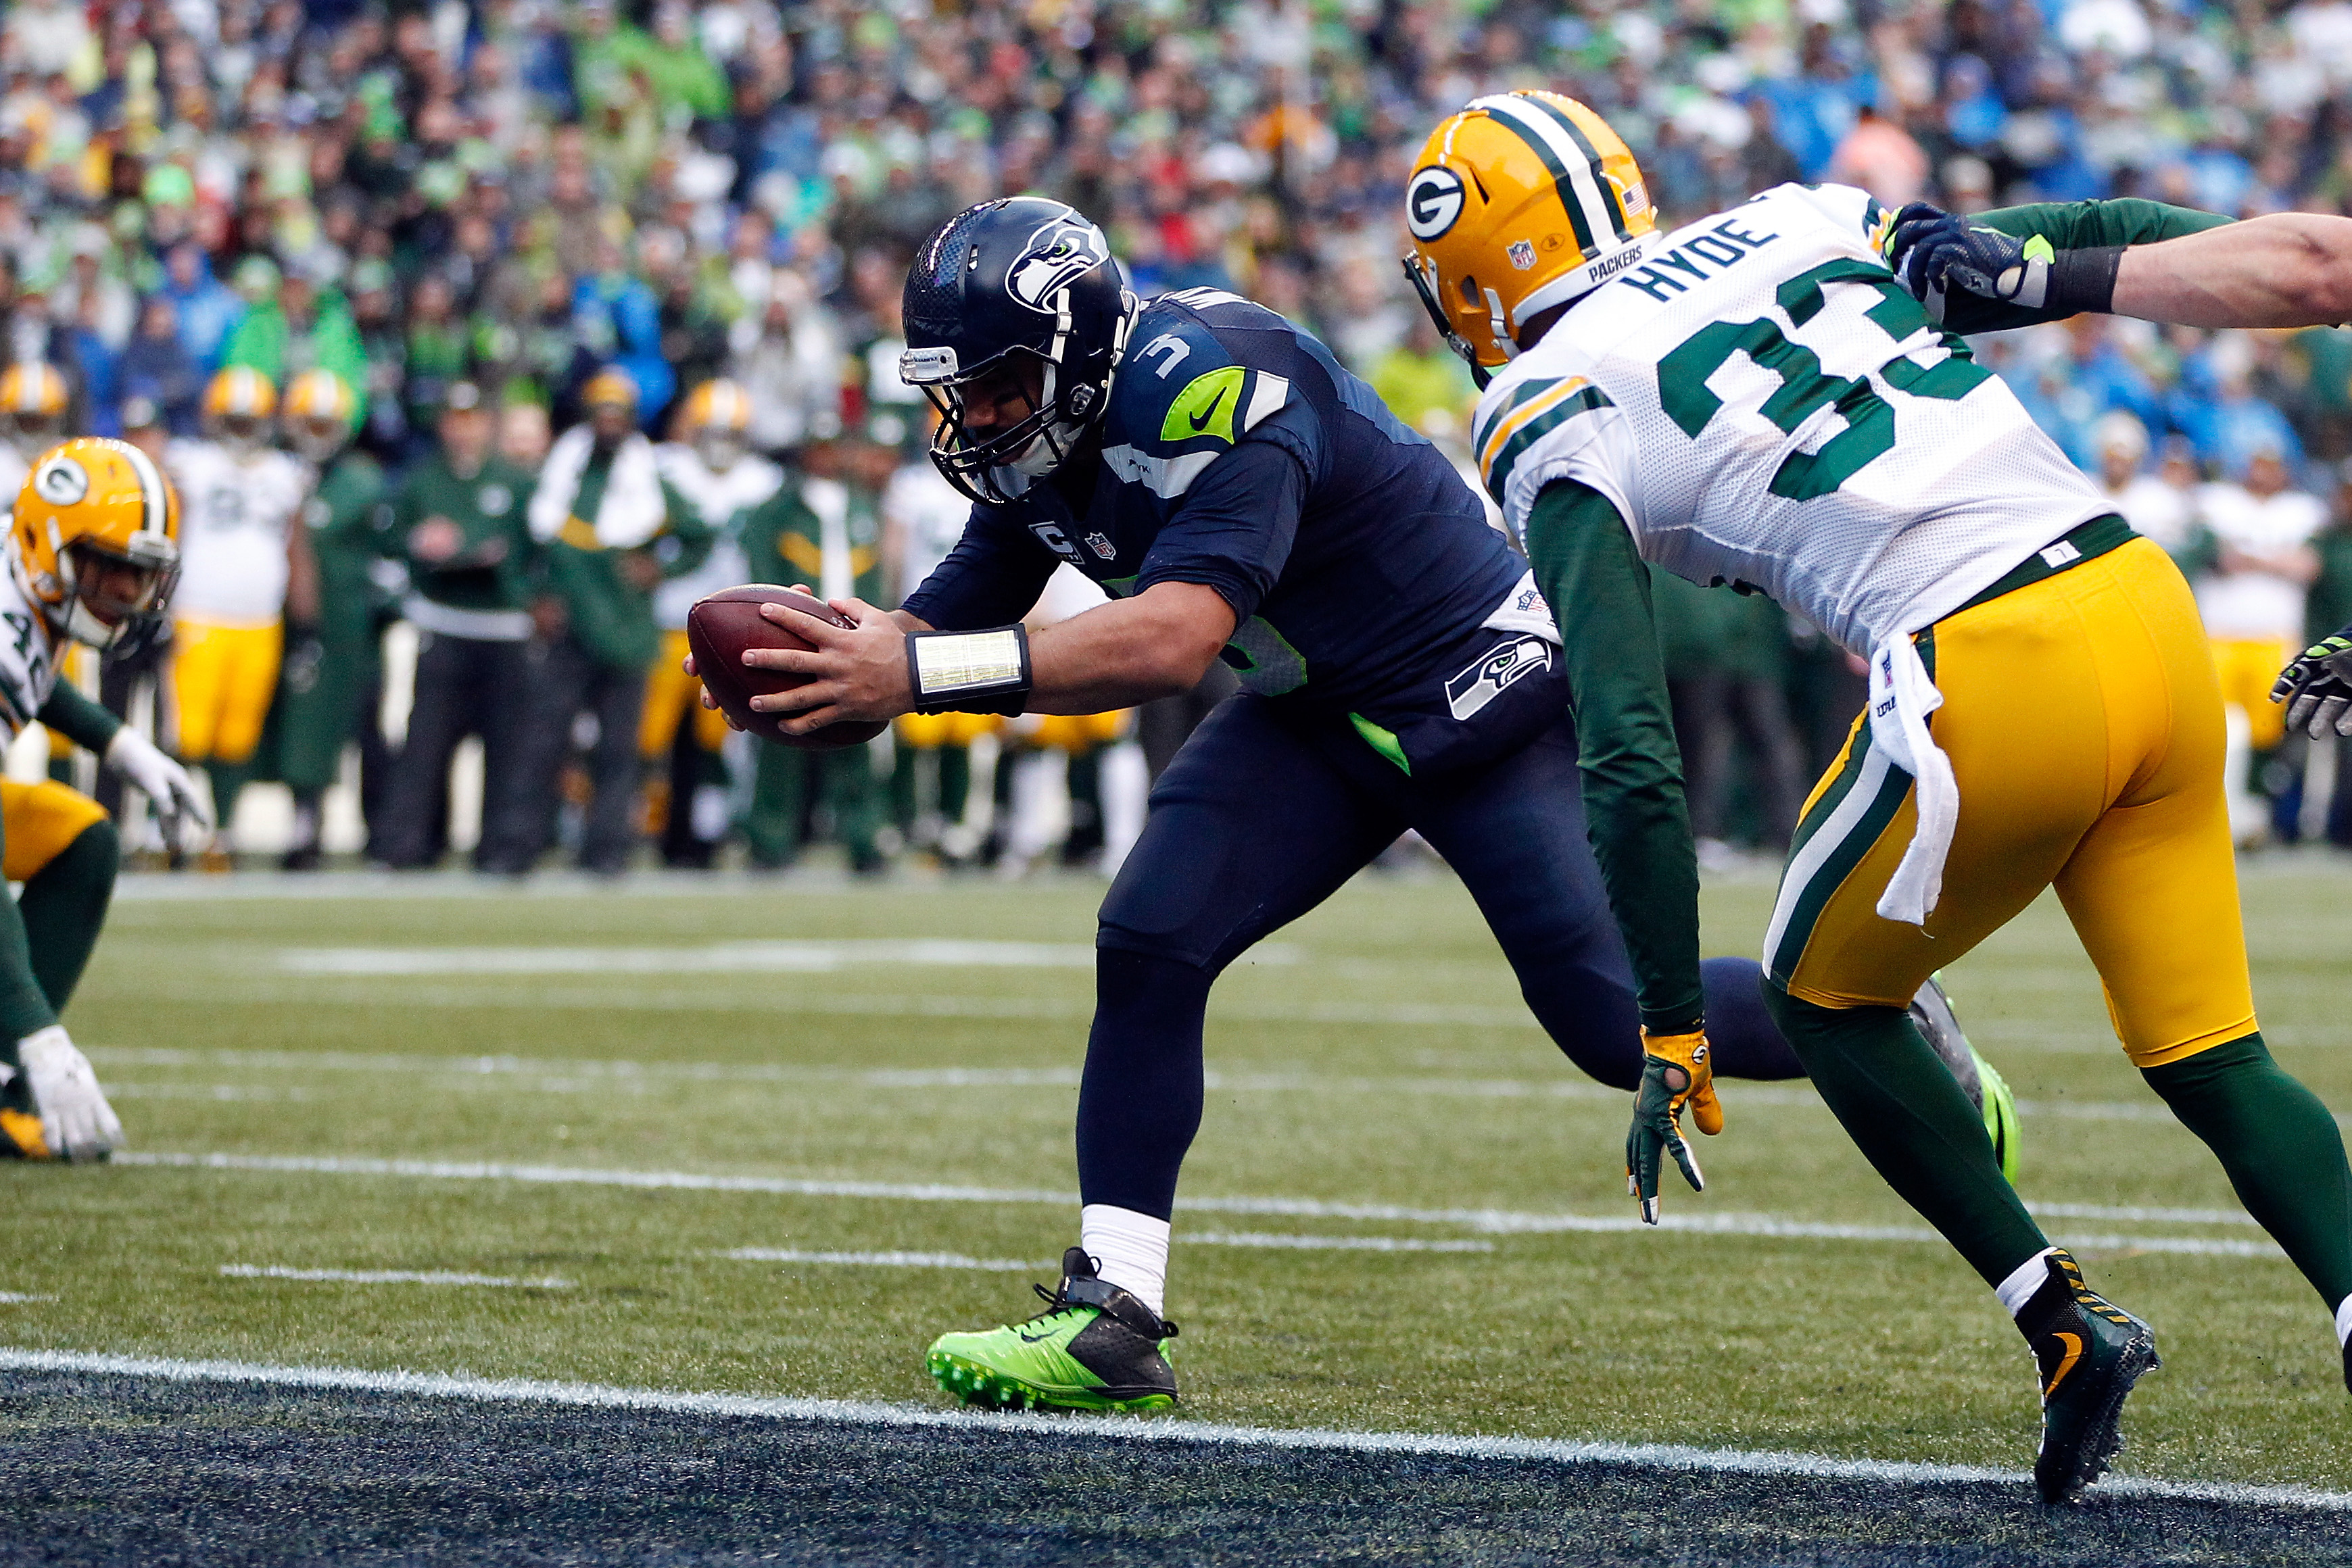 Seahawks QB Russell Wilson (No. 3) hurt the Packer in the NFC Championship Game with his read-option runs. (Photo by Otto Greule Jr/Getty Images)